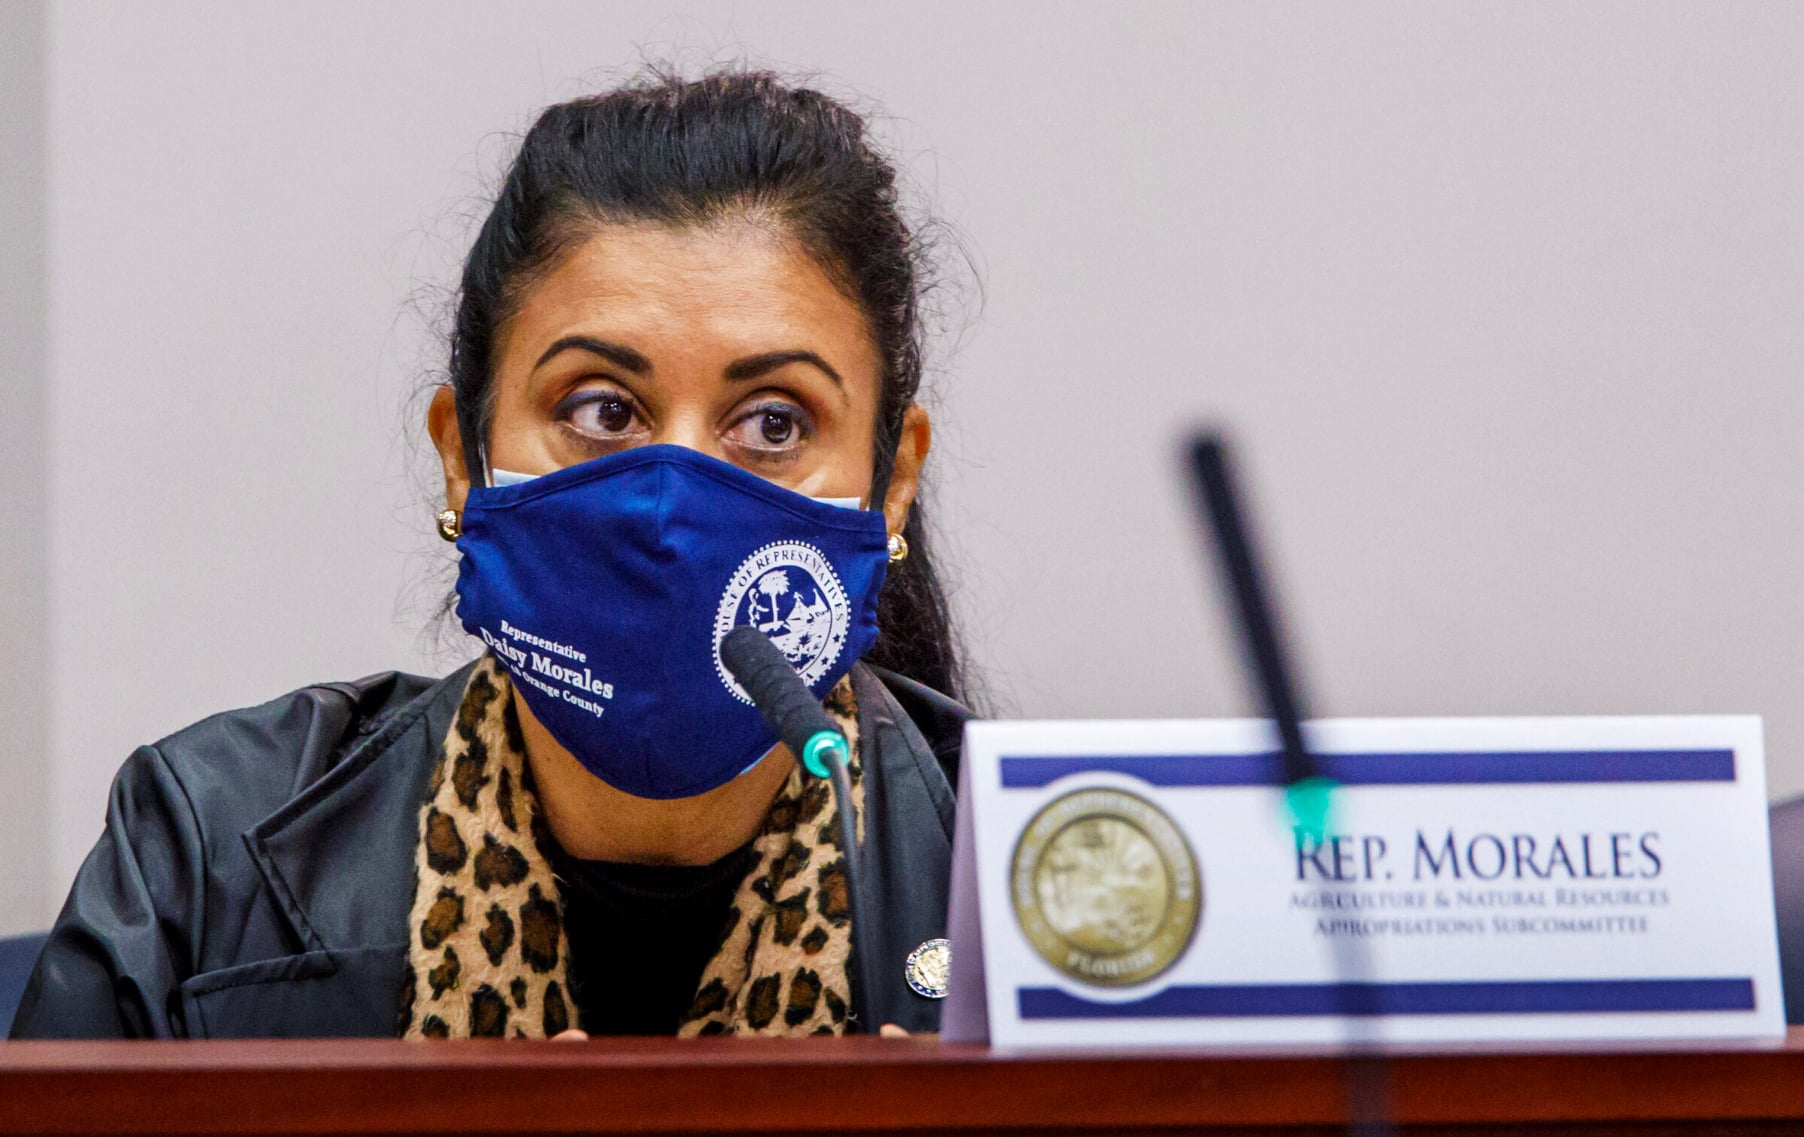 State Rep. Daisy Morales participates in a committee meeting in the State Capitol in Tallahassee during the 2021 Legislative Session. Photo courtesy of Florida Politics.